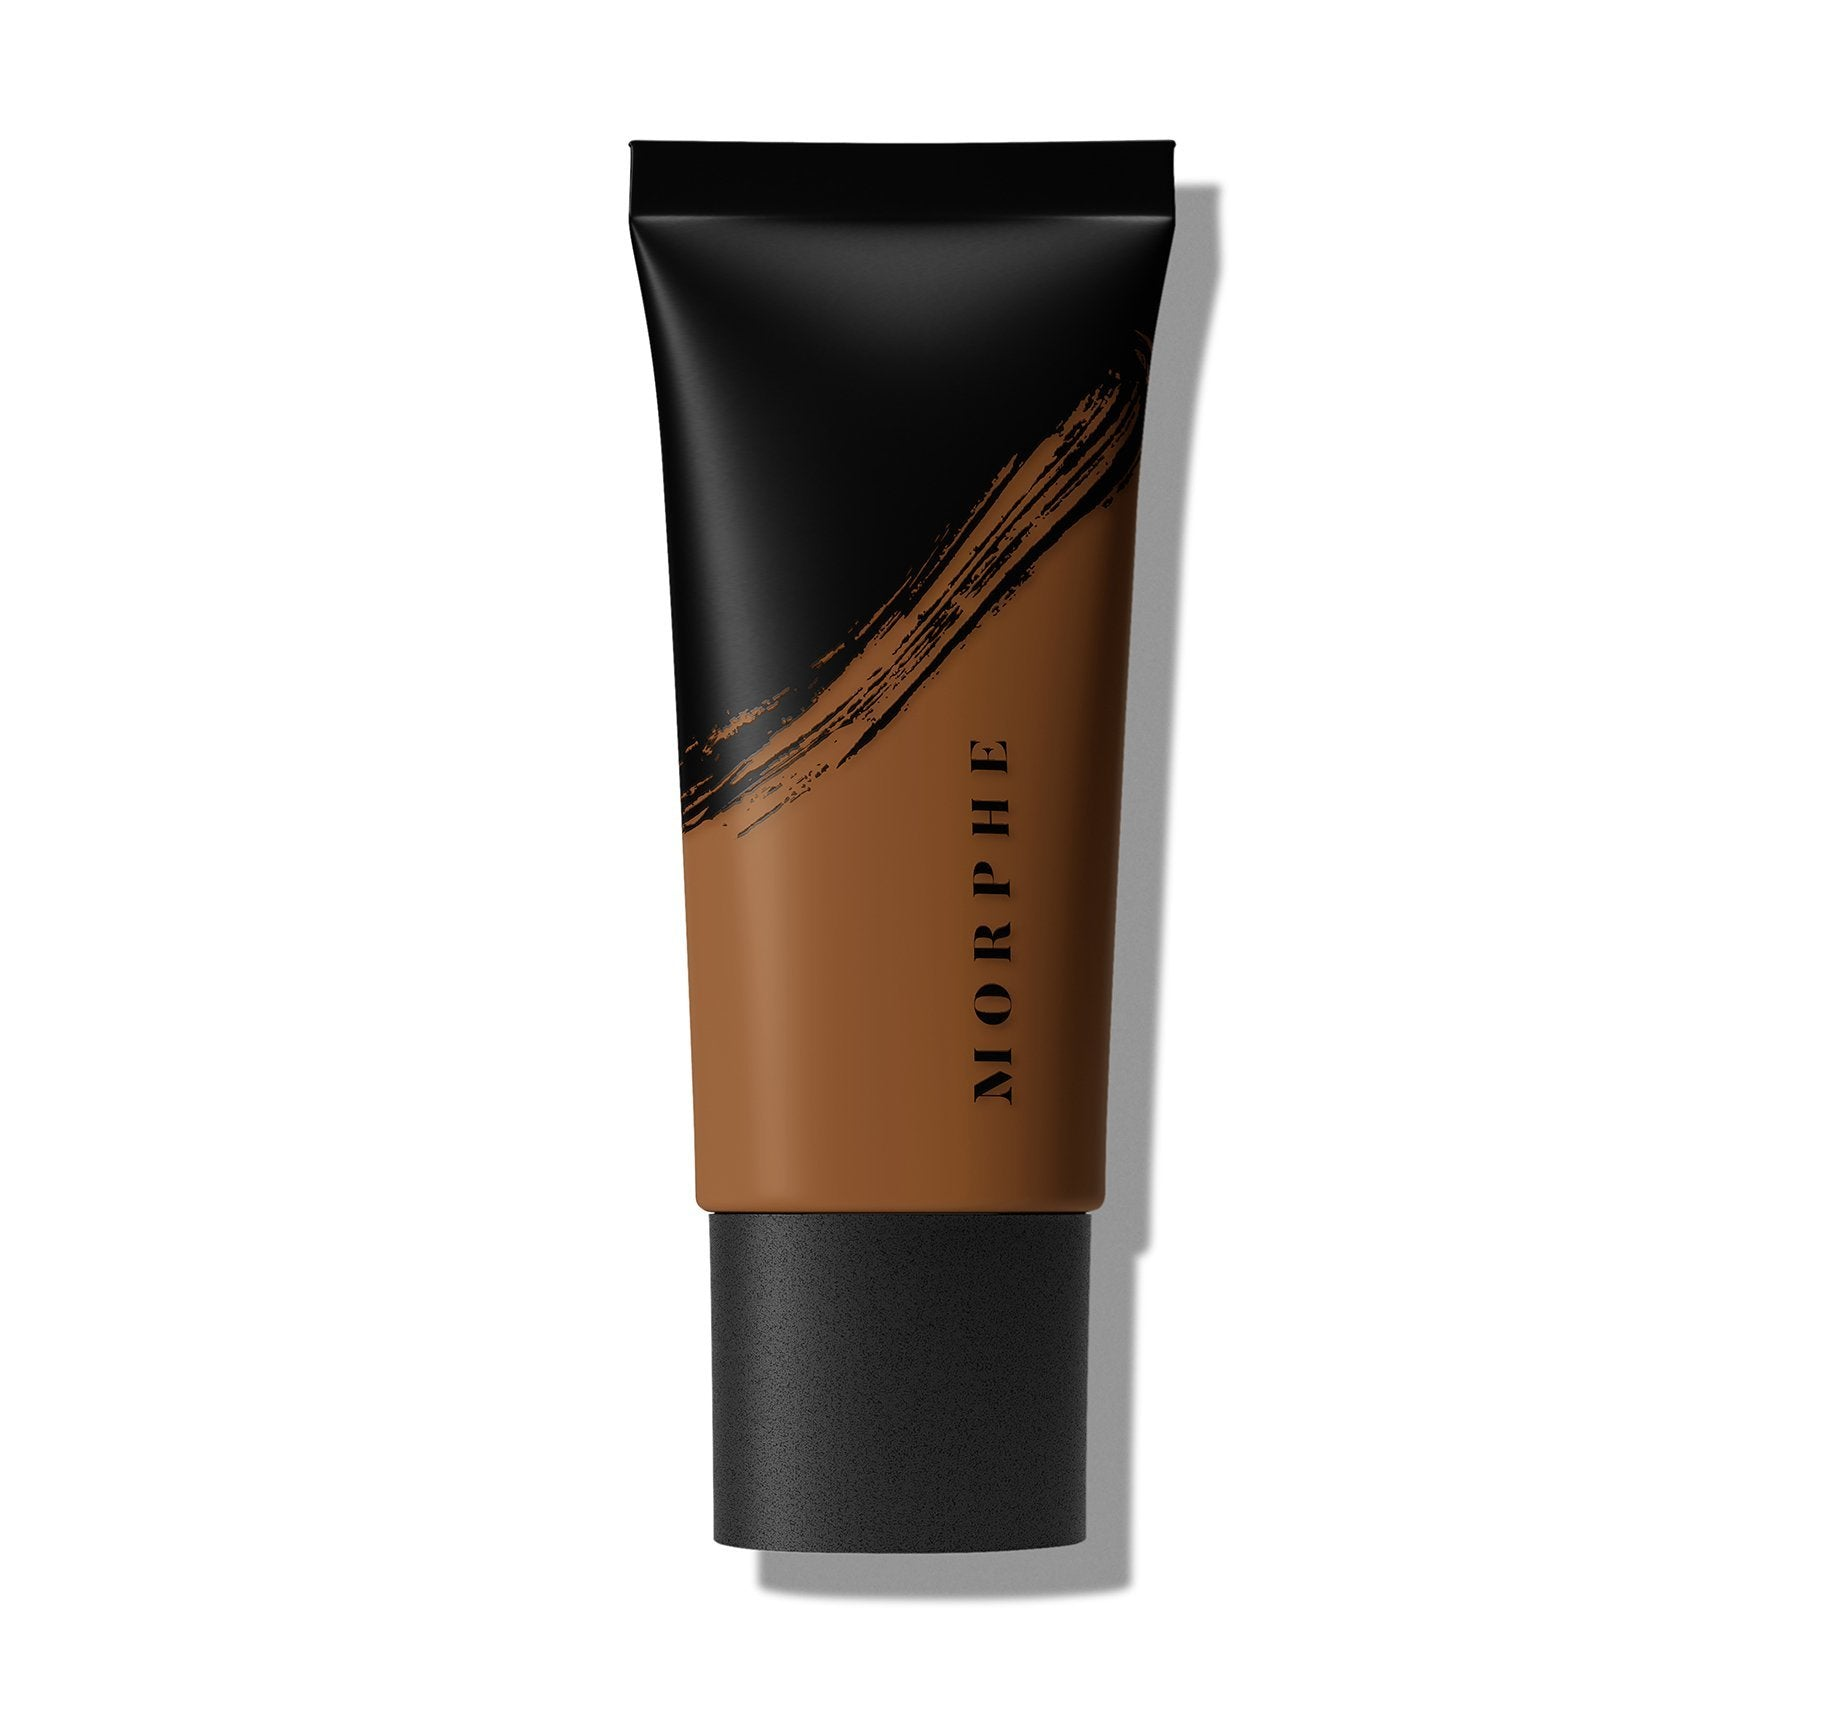 FLUIDITY FULL-COVERAGE FOUNDATION - F4.79, view larger image